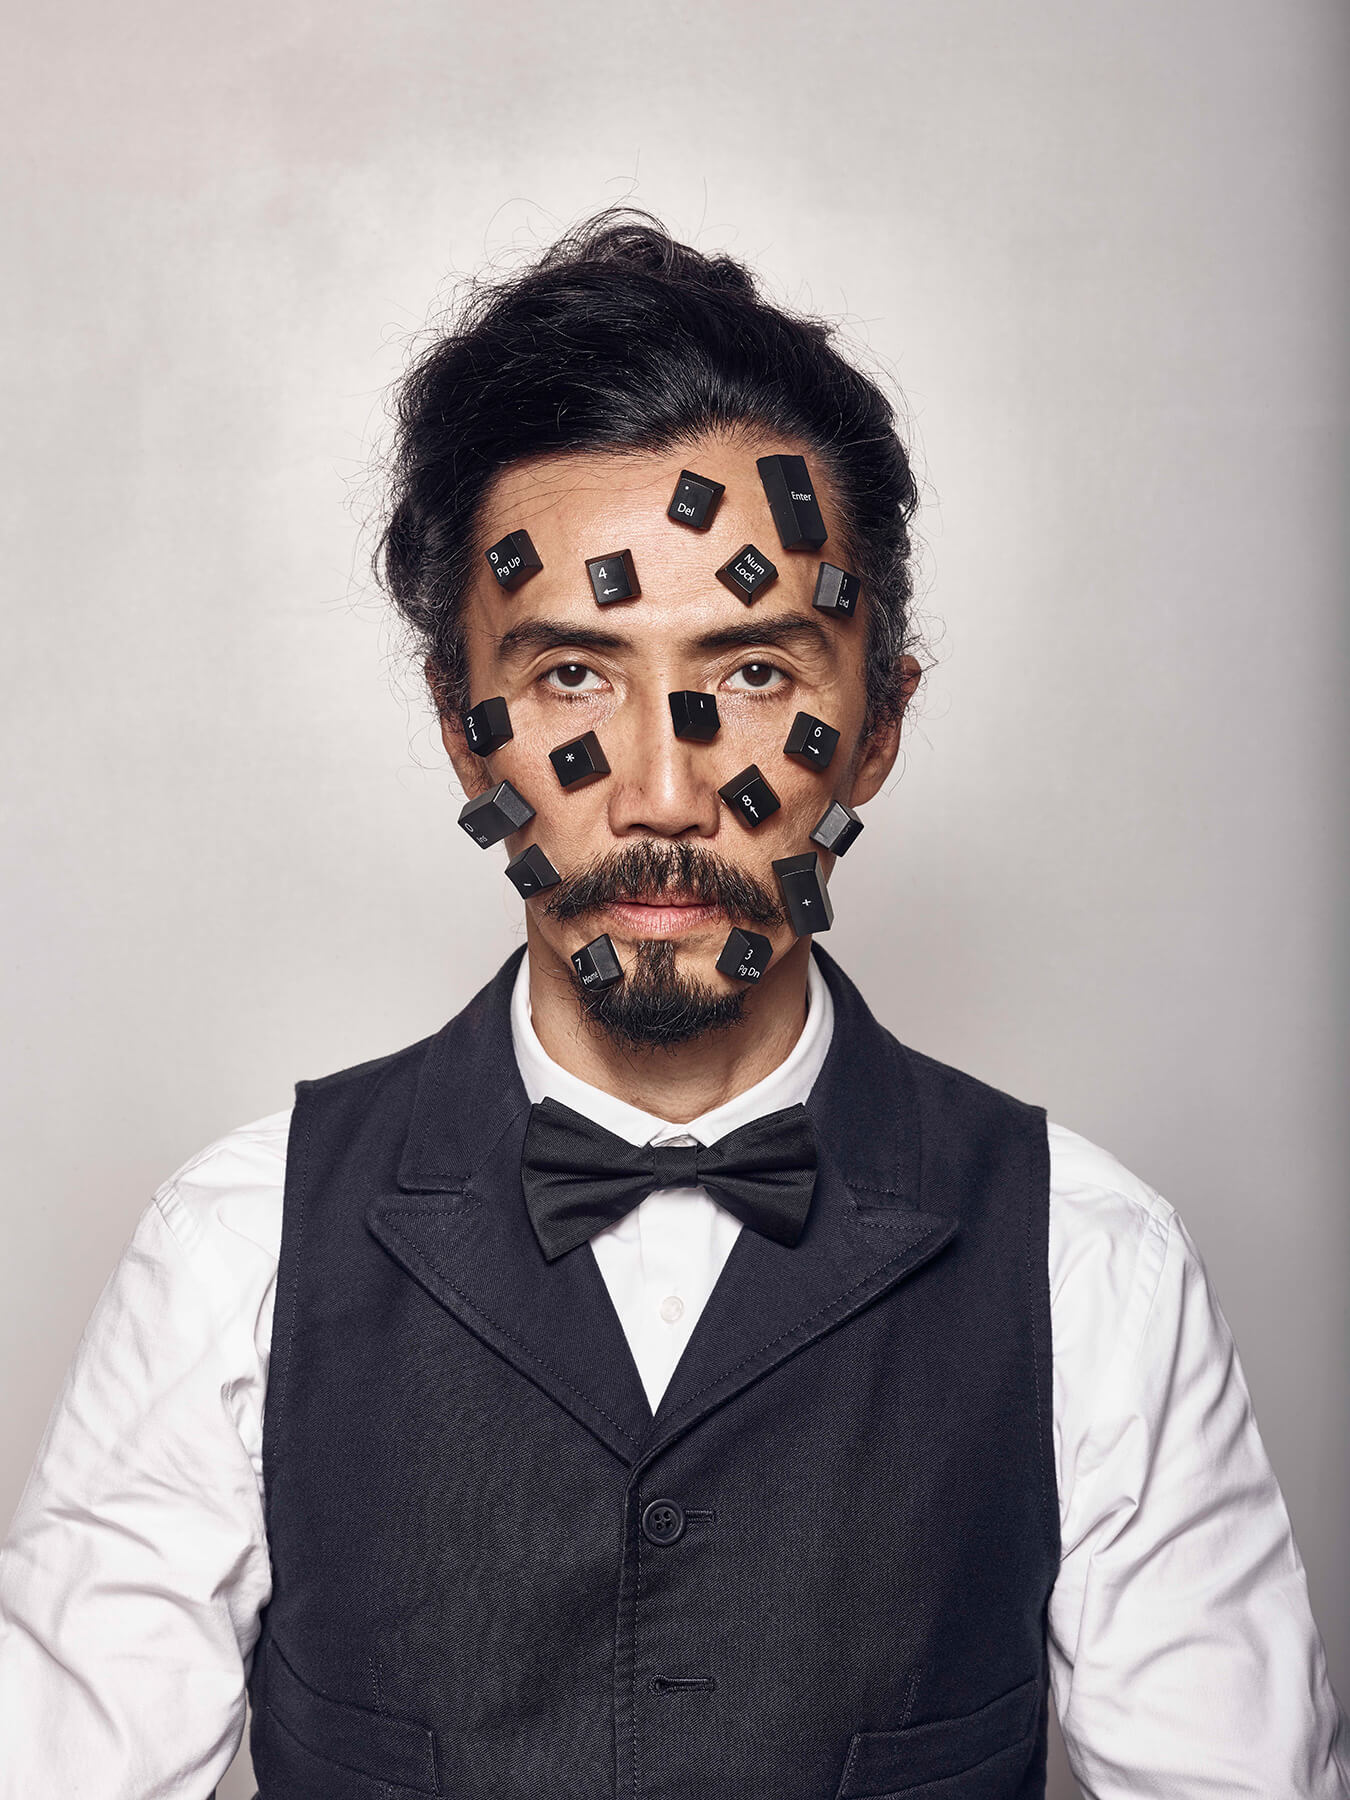 6 Sep 2017: Derong is photographed with stray keyboard keys all over his face